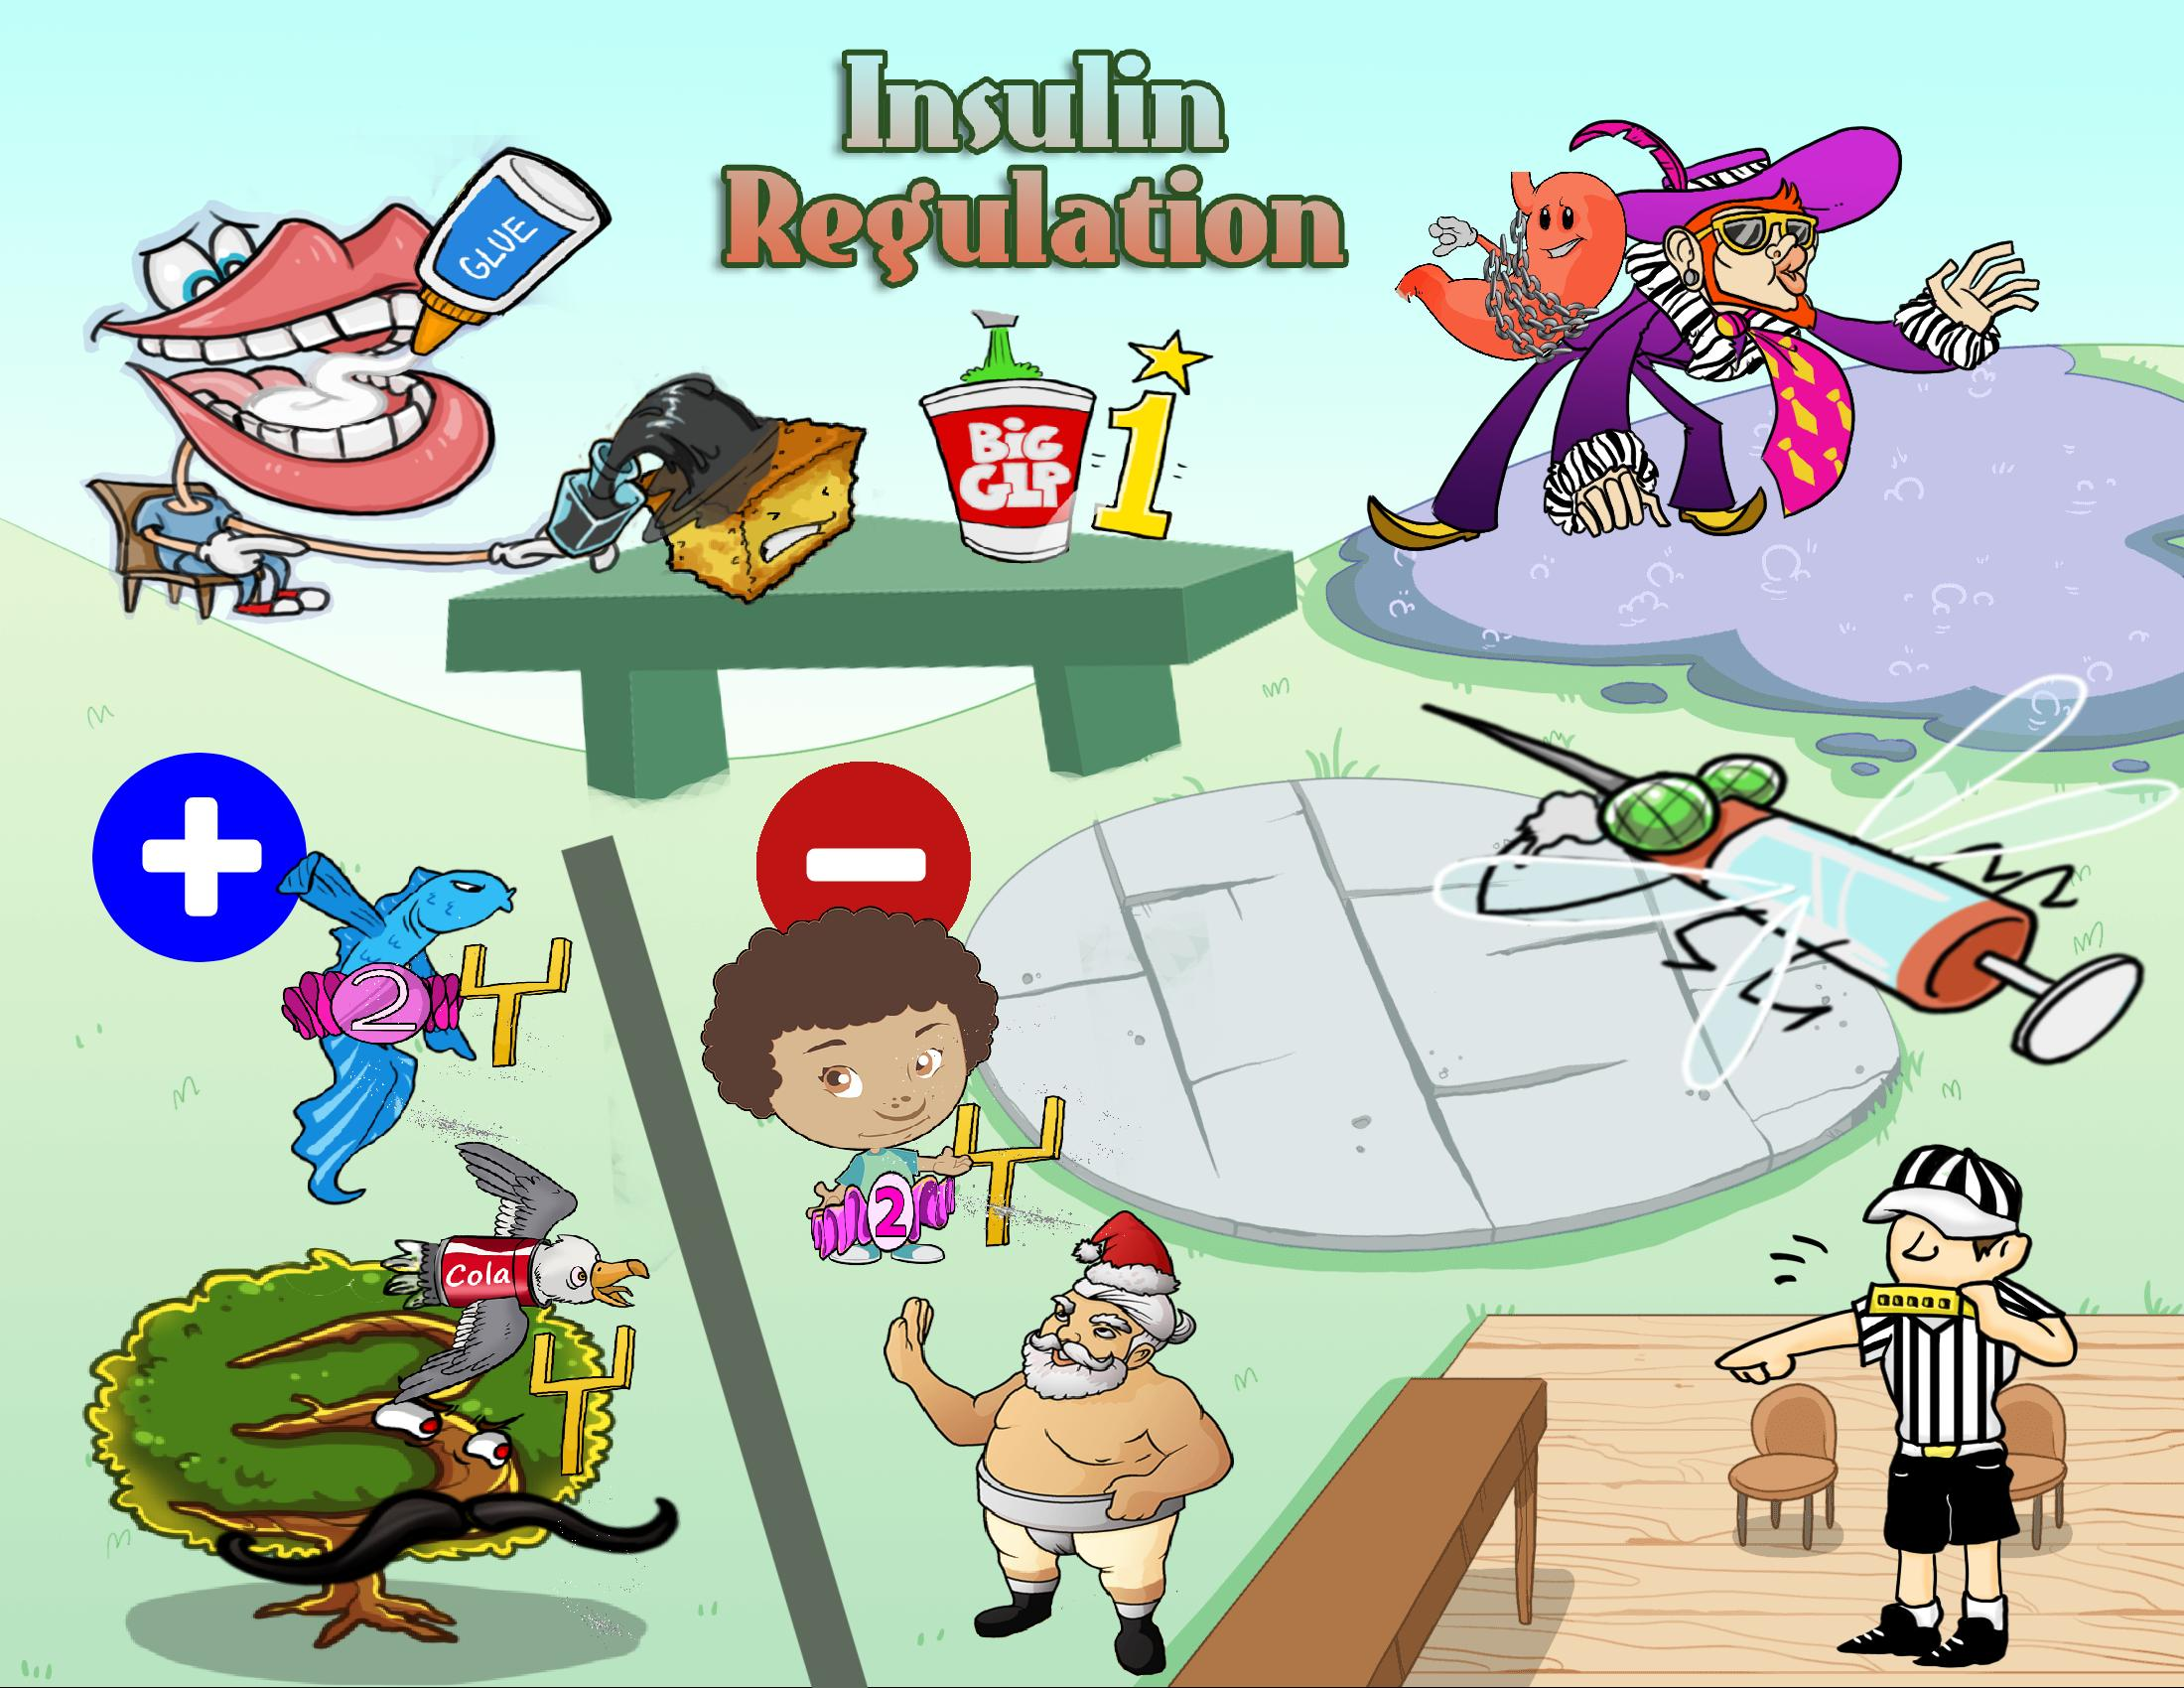 Insulin Regulation